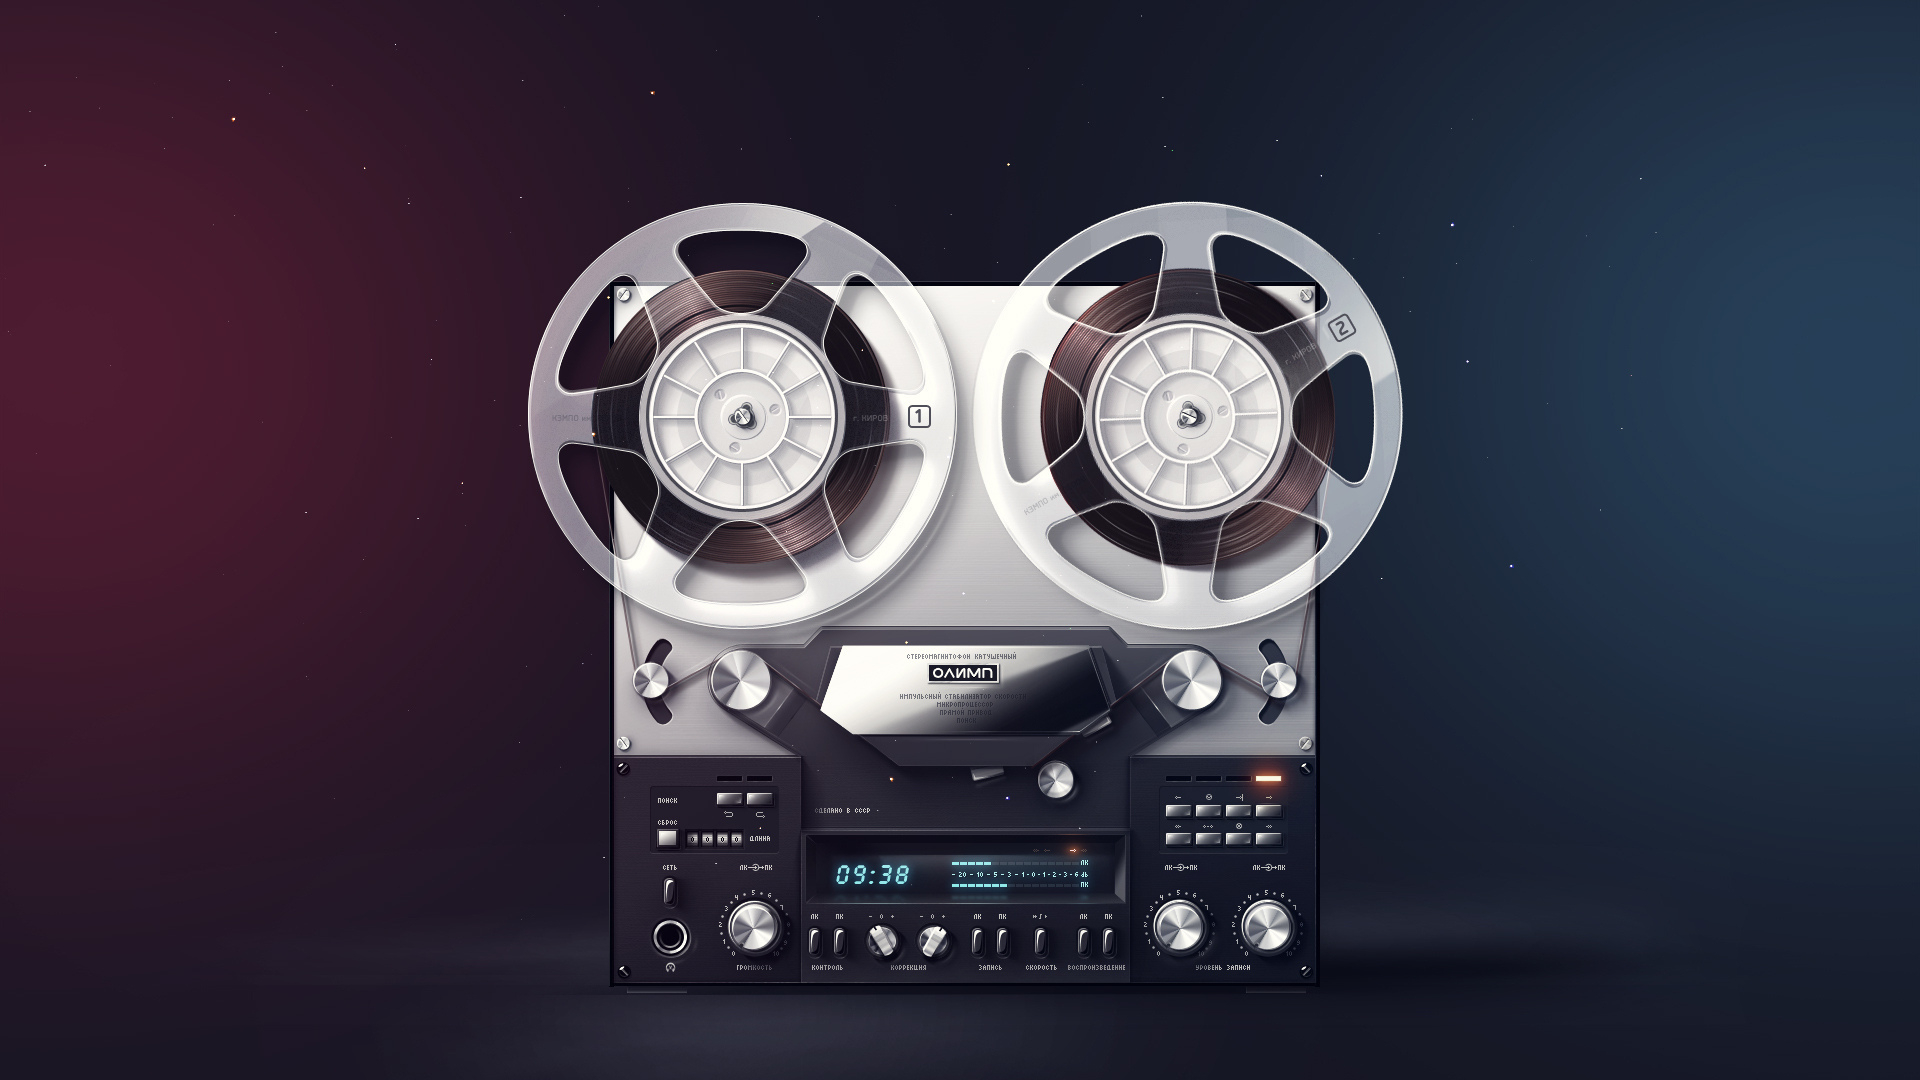 Image: Stereo tape recorder, Olympus, reel, display, background, ribbon